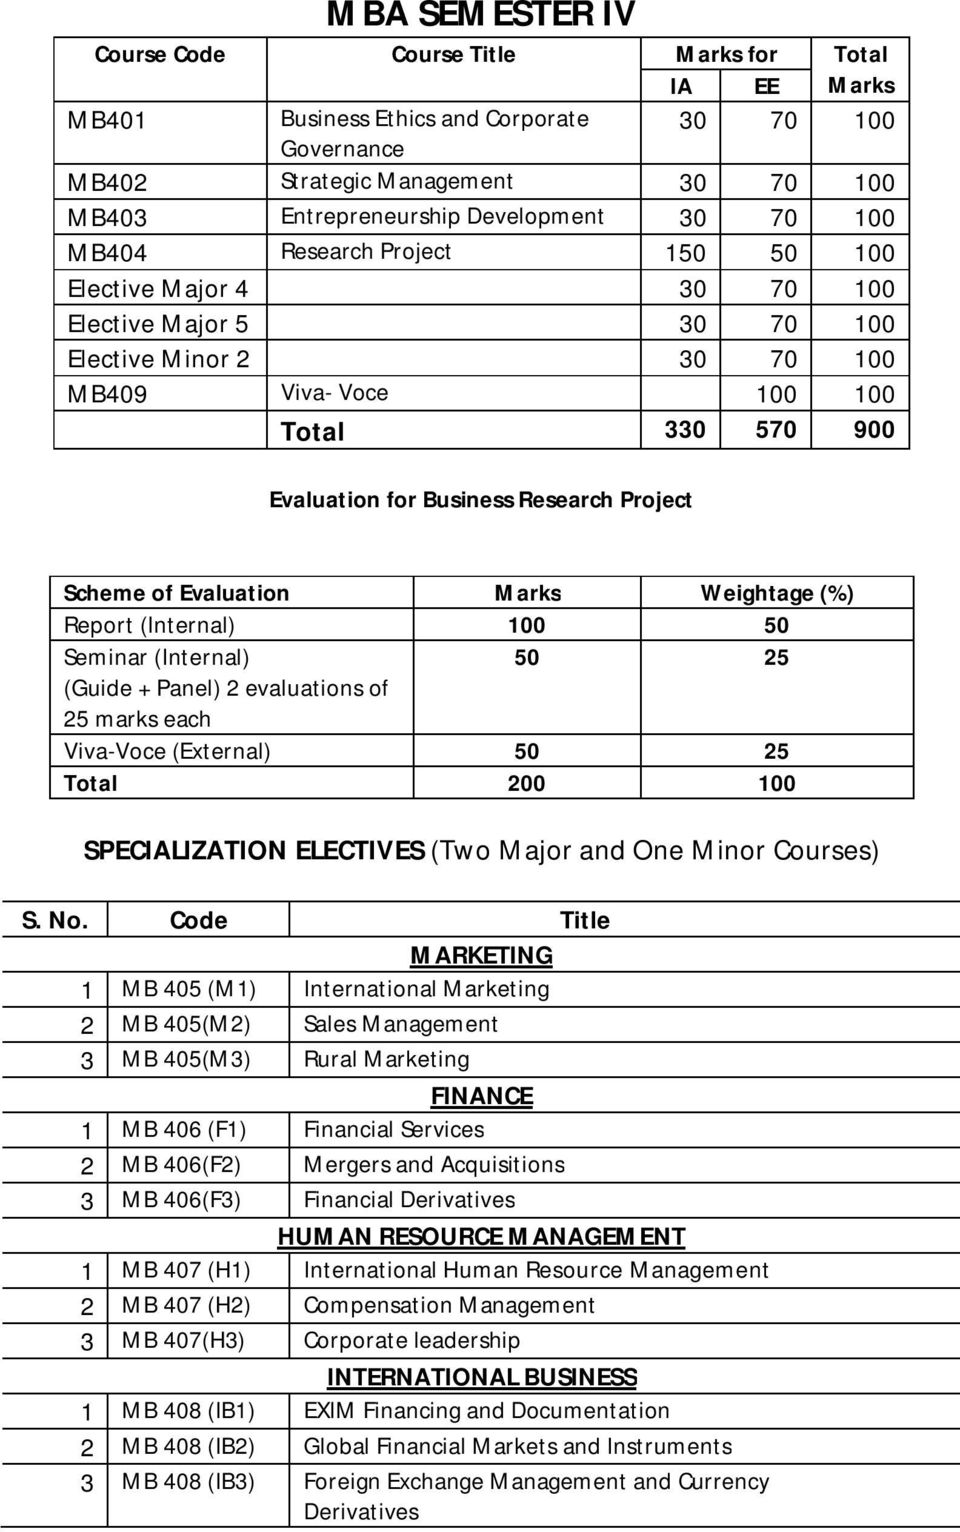 Project Scheme of Evaluation Marks Weightage (%) Report (Internal) 100 50 Seminar (Internal) 50 25 (Guide + Panel) 2 evaluations of 25 marks each Viva-Voce (External) 50 25 Total 200 100